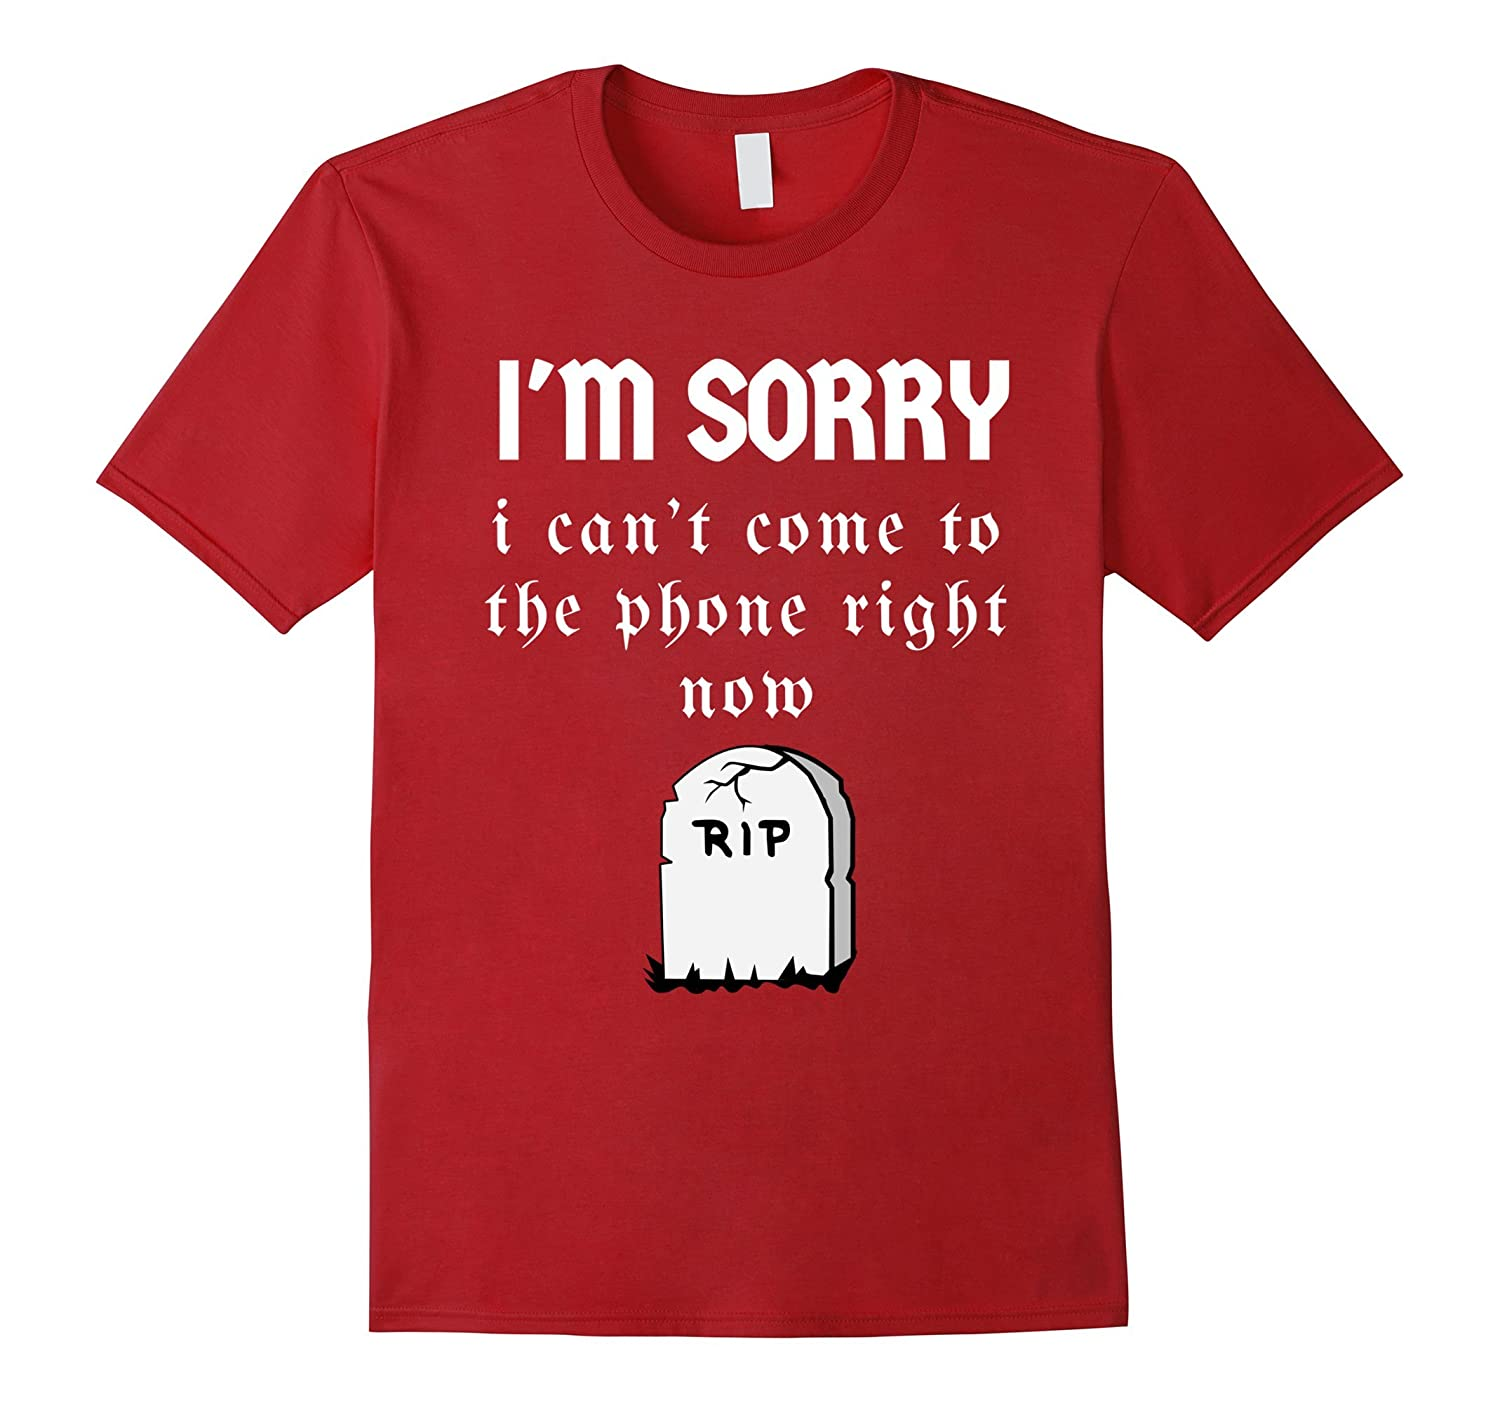 Can't Come To The Phone Right Now Meme Tshirt-Halloween RIP-T-Shirt